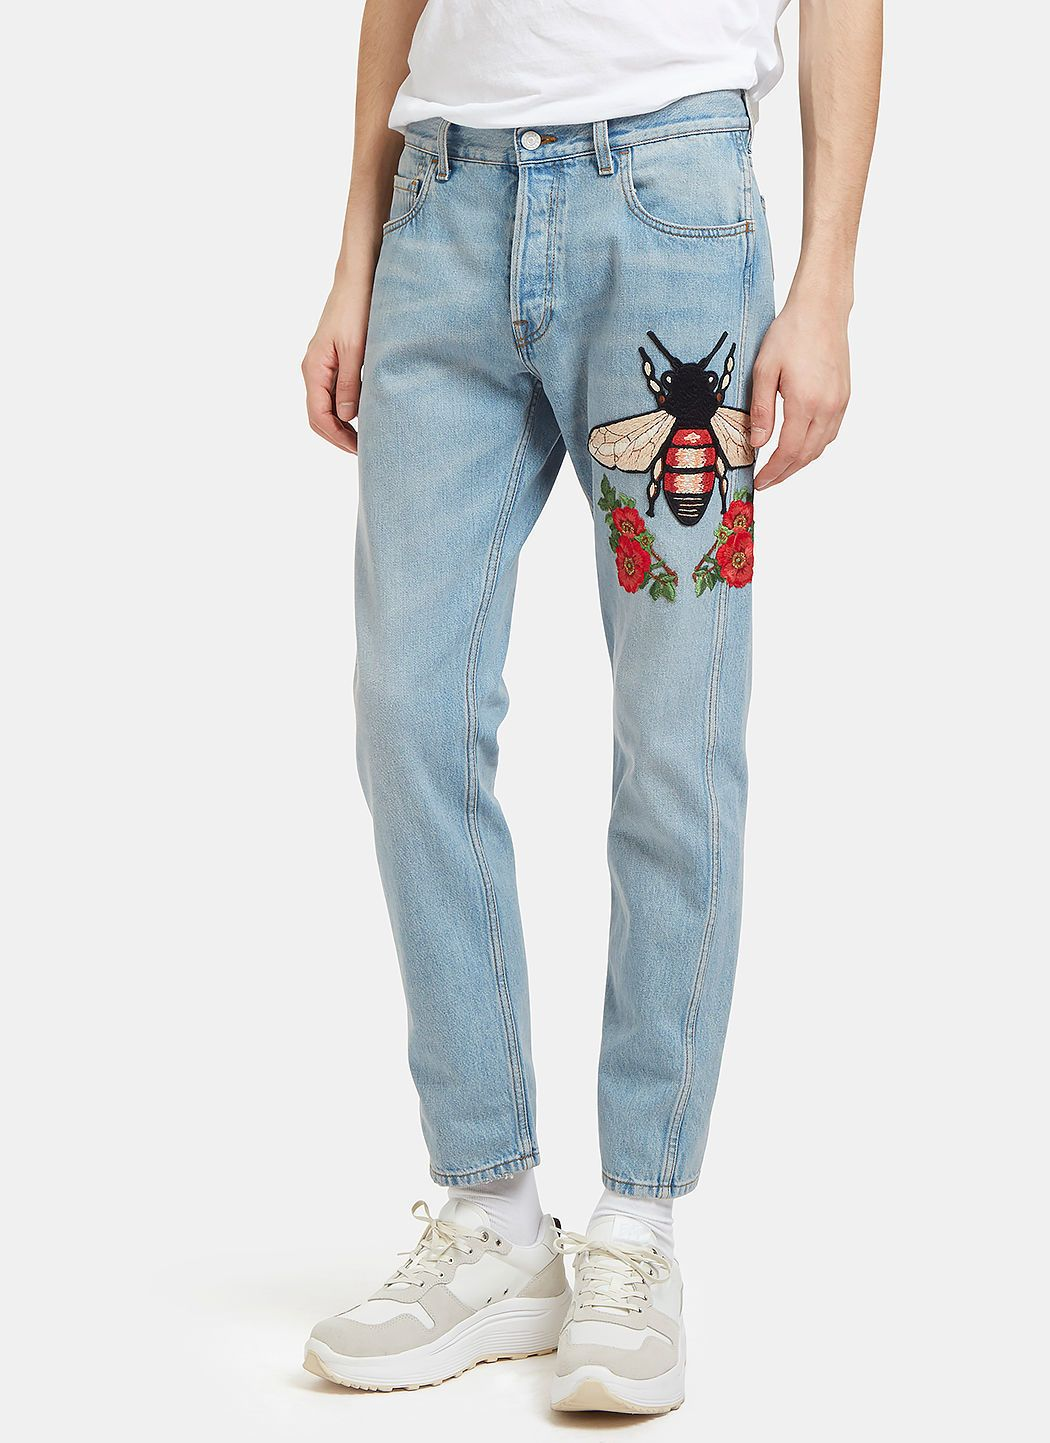 comprare on line 902ec e0c8b GUCCI Men'S Embroidered Floral Fly Patch Jeans In Blue ...